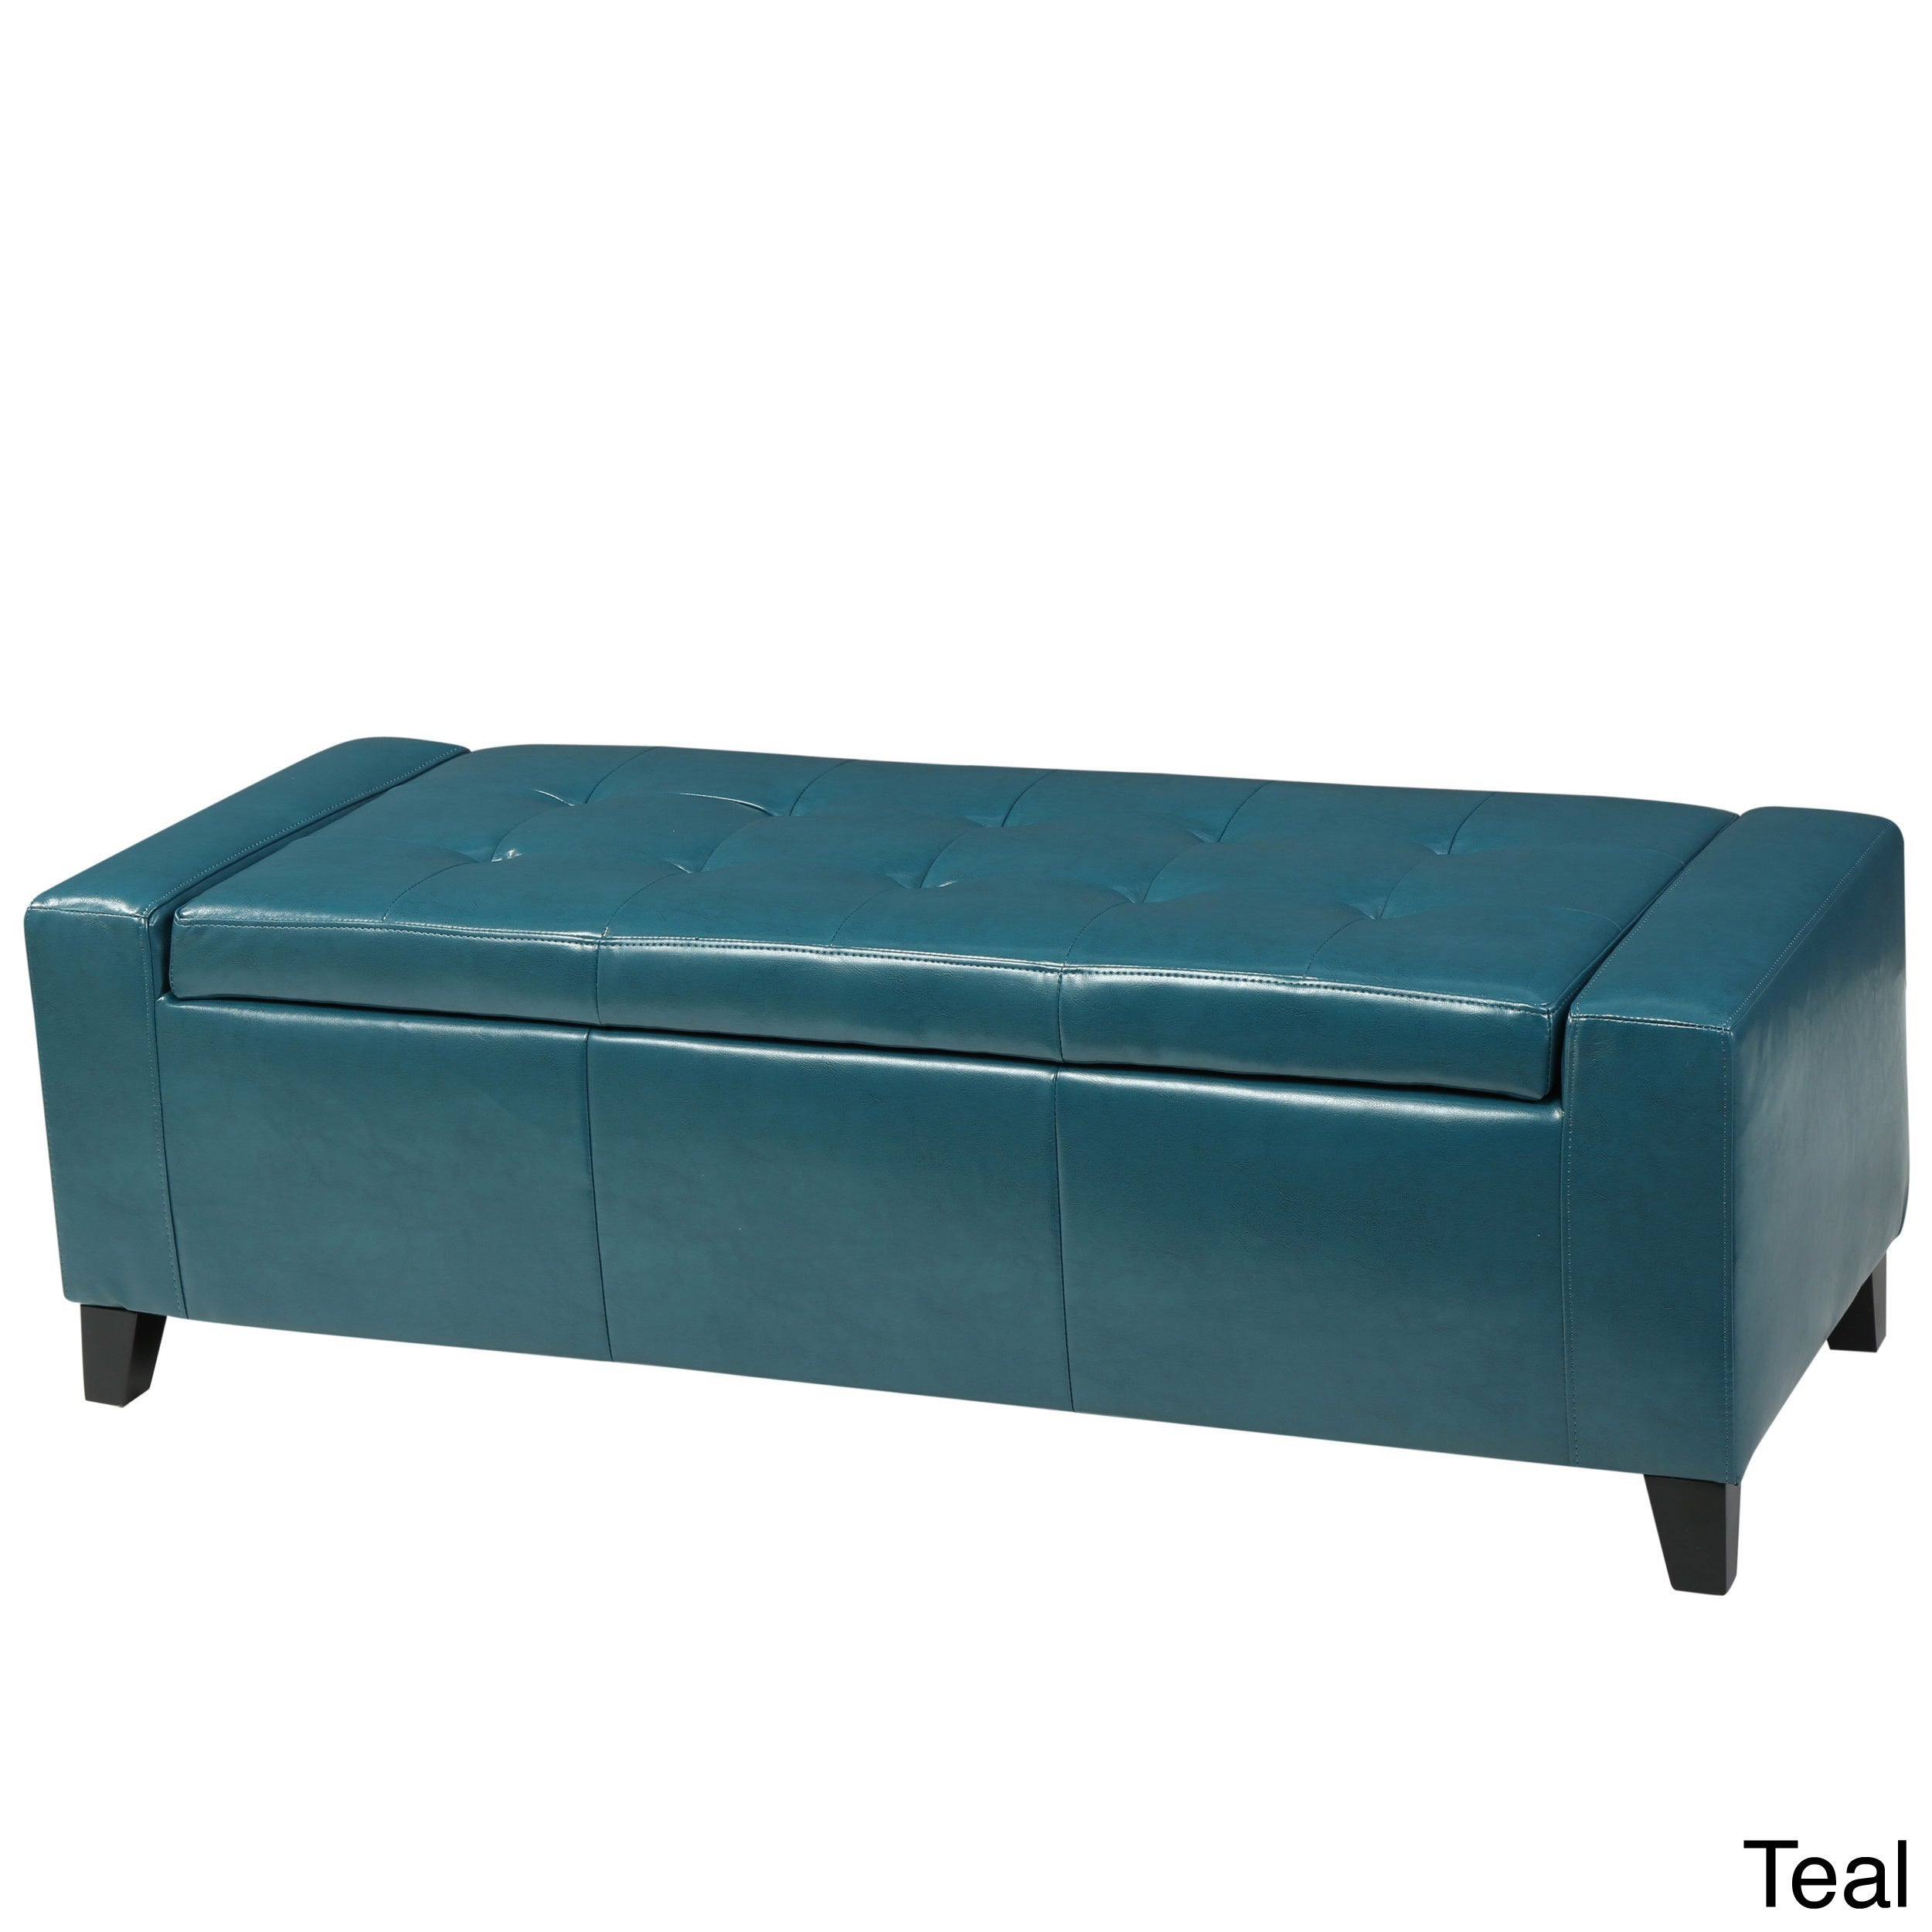 guernsey faux leather storage ottoman bench by christopher knight home ebay. Black Bedroom Furniture Sets. Home Design Ideas